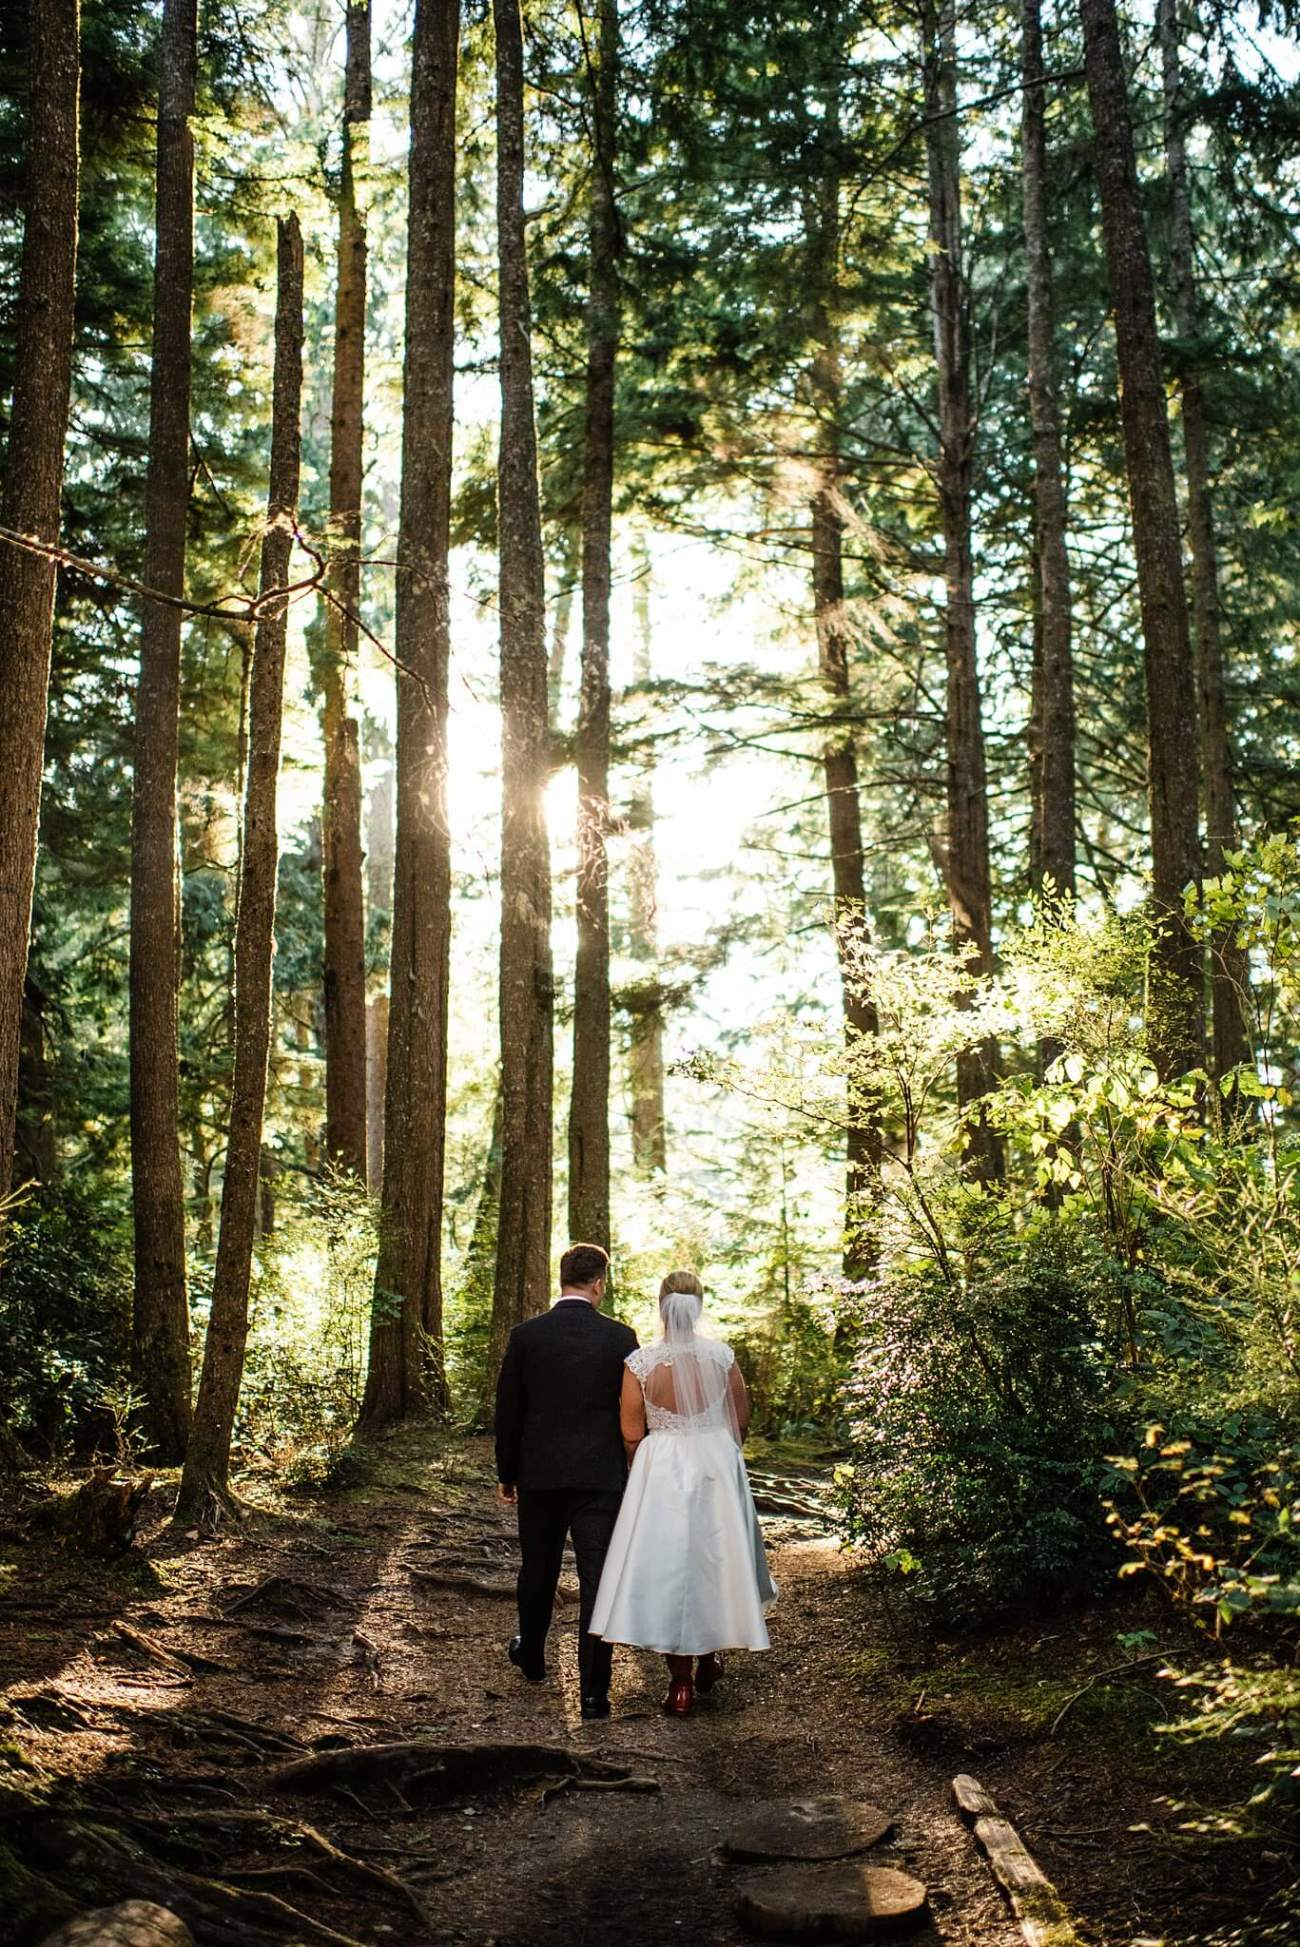 Cape Flattery,S Photography,adventure photographer,elope,elopement,jimmy choos,small wedding,tatoosh island,washington,